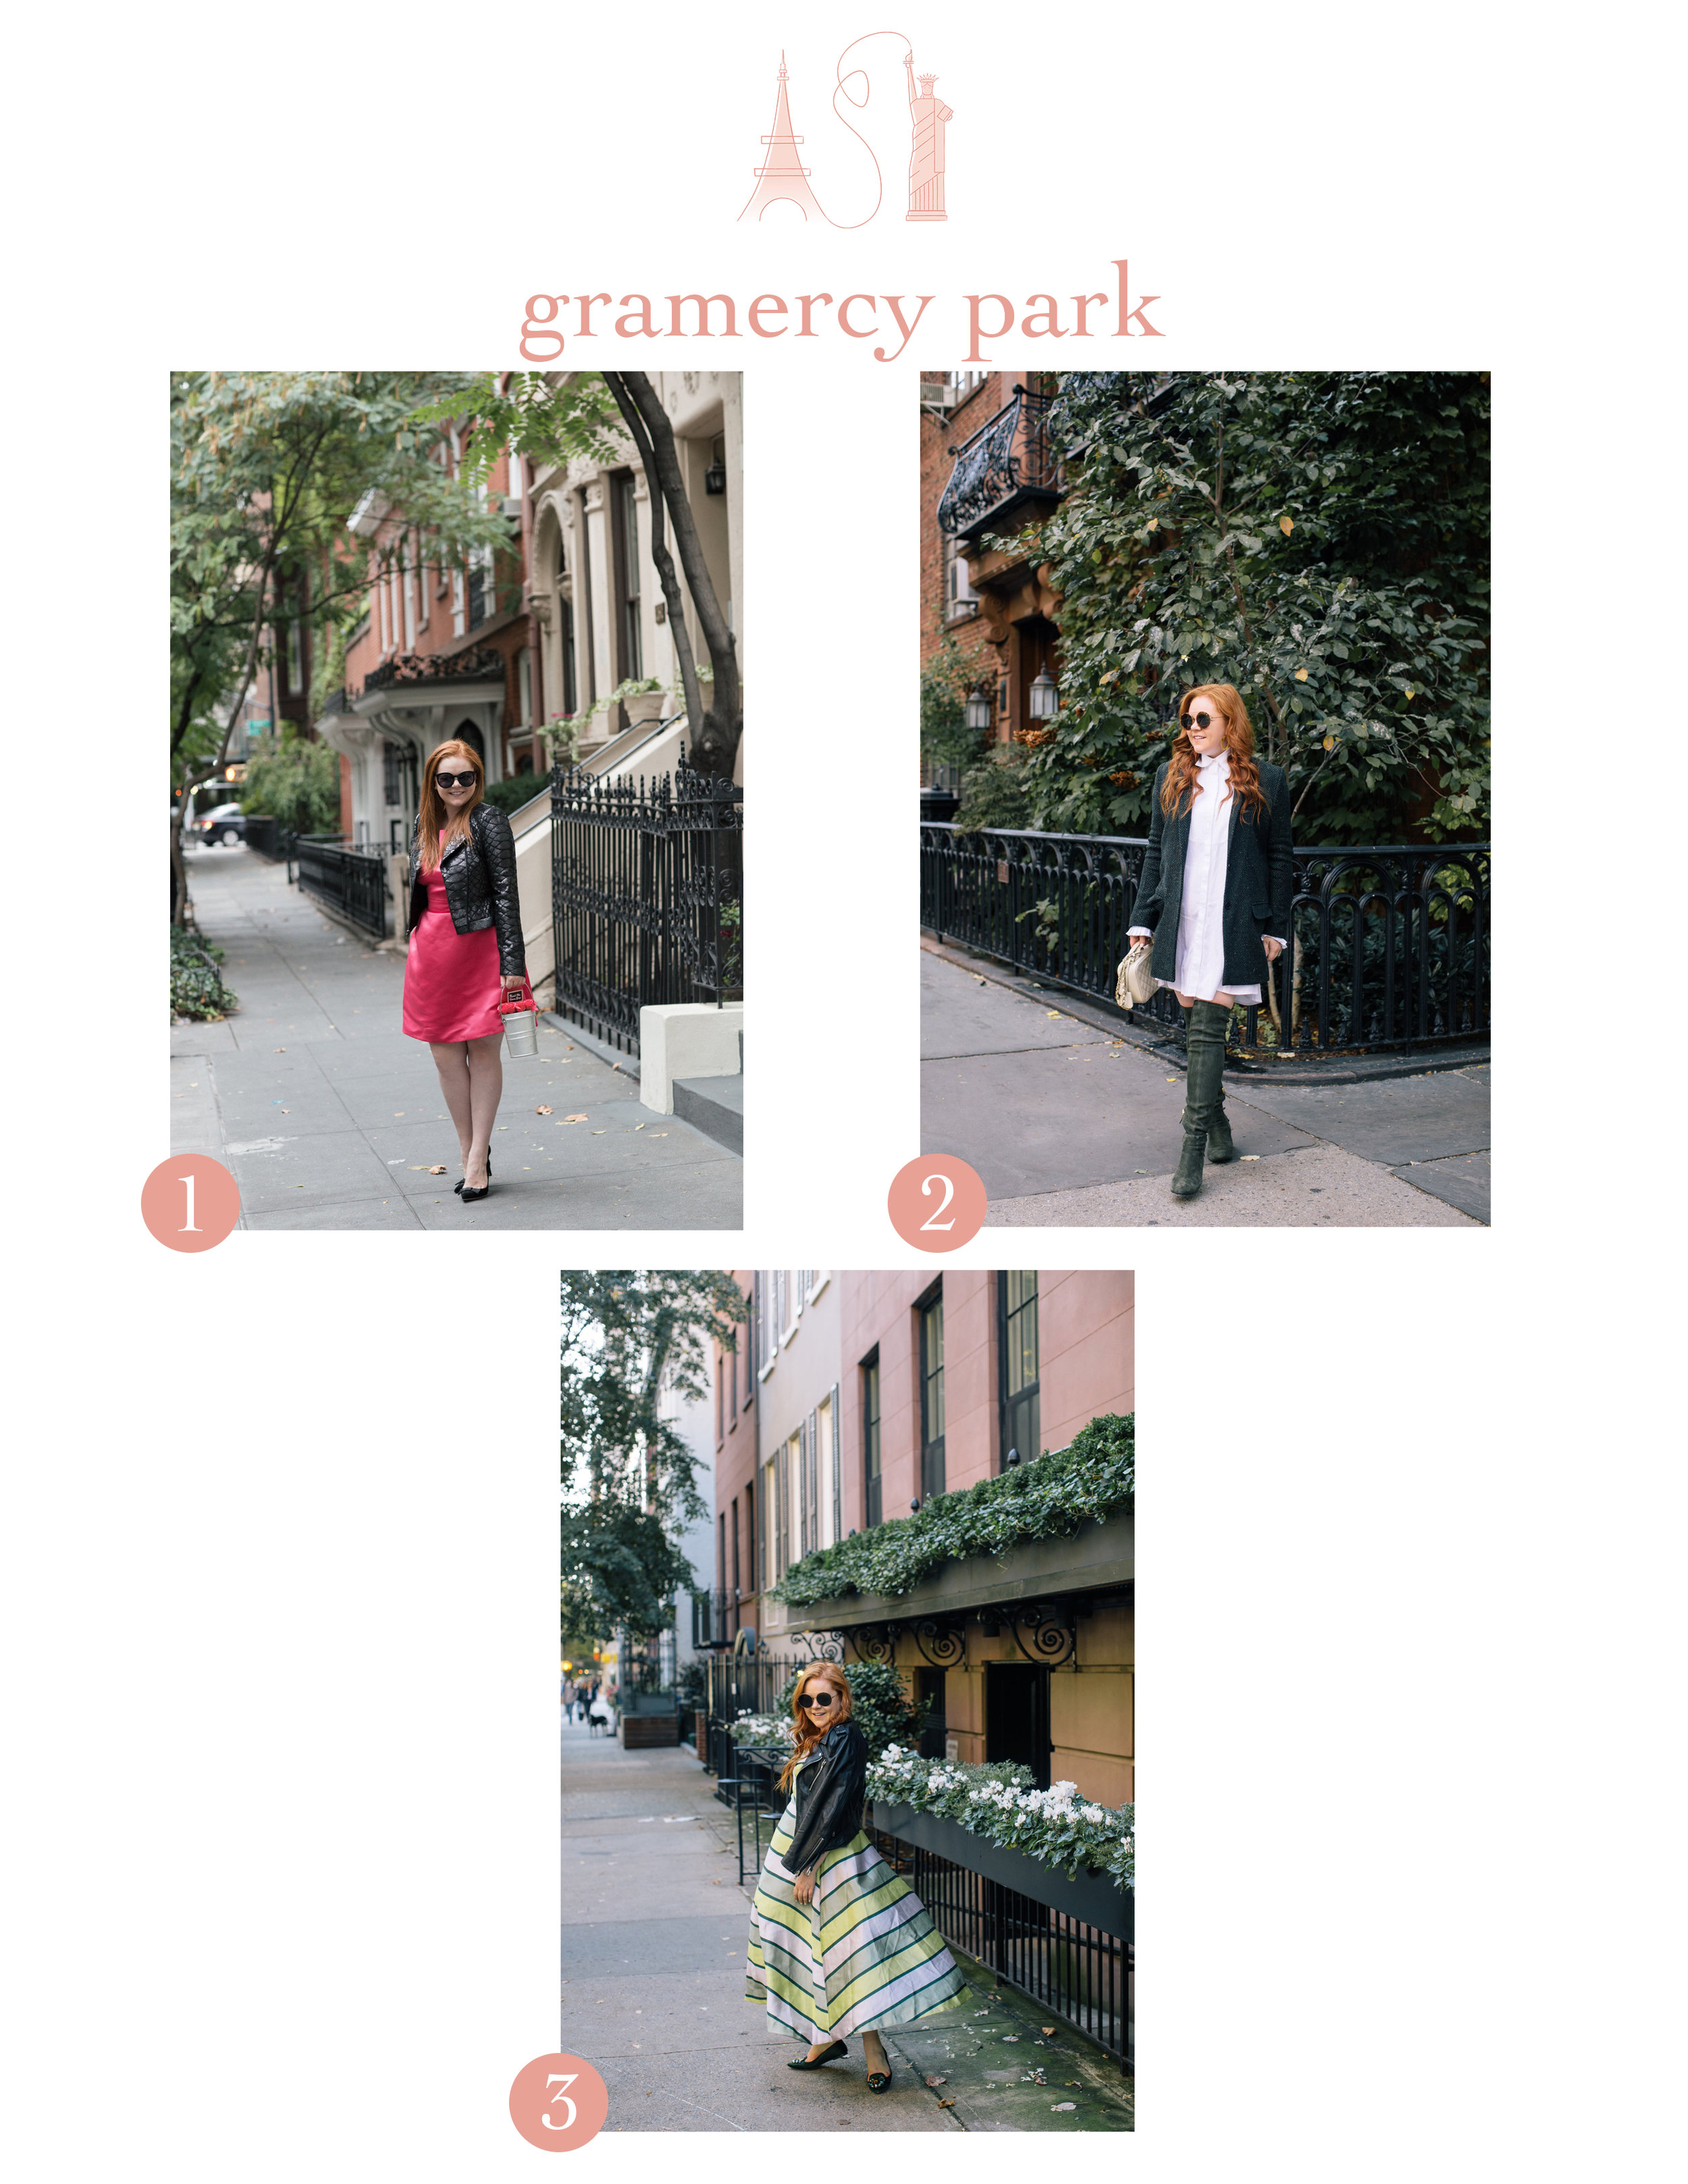 gramercy_park_photo_locations.jpg